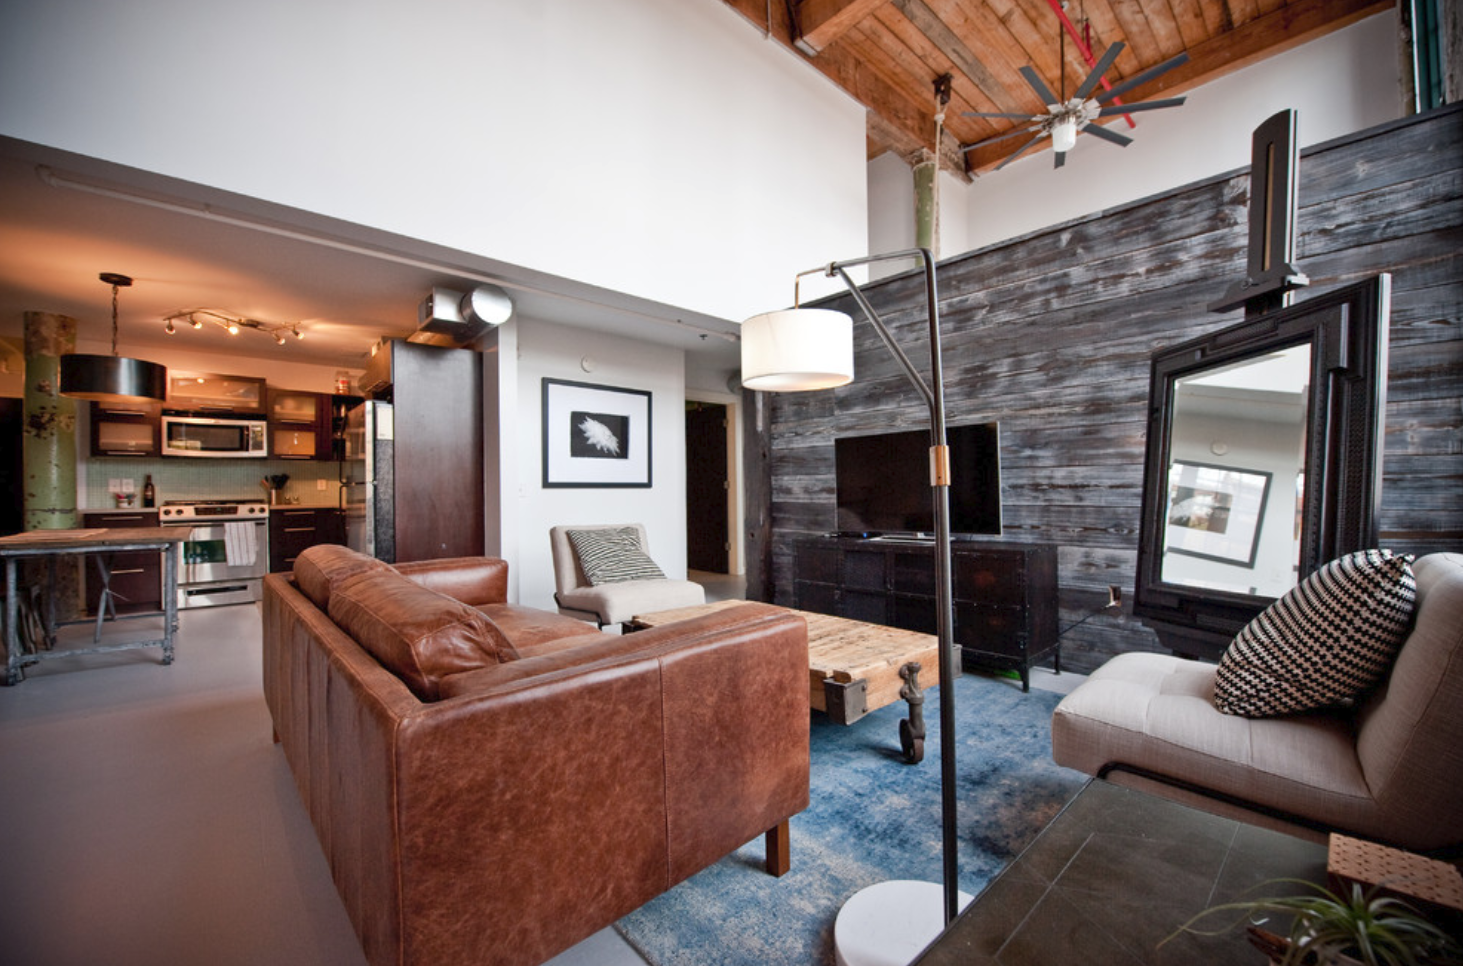 Heirloom Design Build Eutree Shou Sugi Ban Charred Dark Wood Wall Paneling Feature Accent Wall